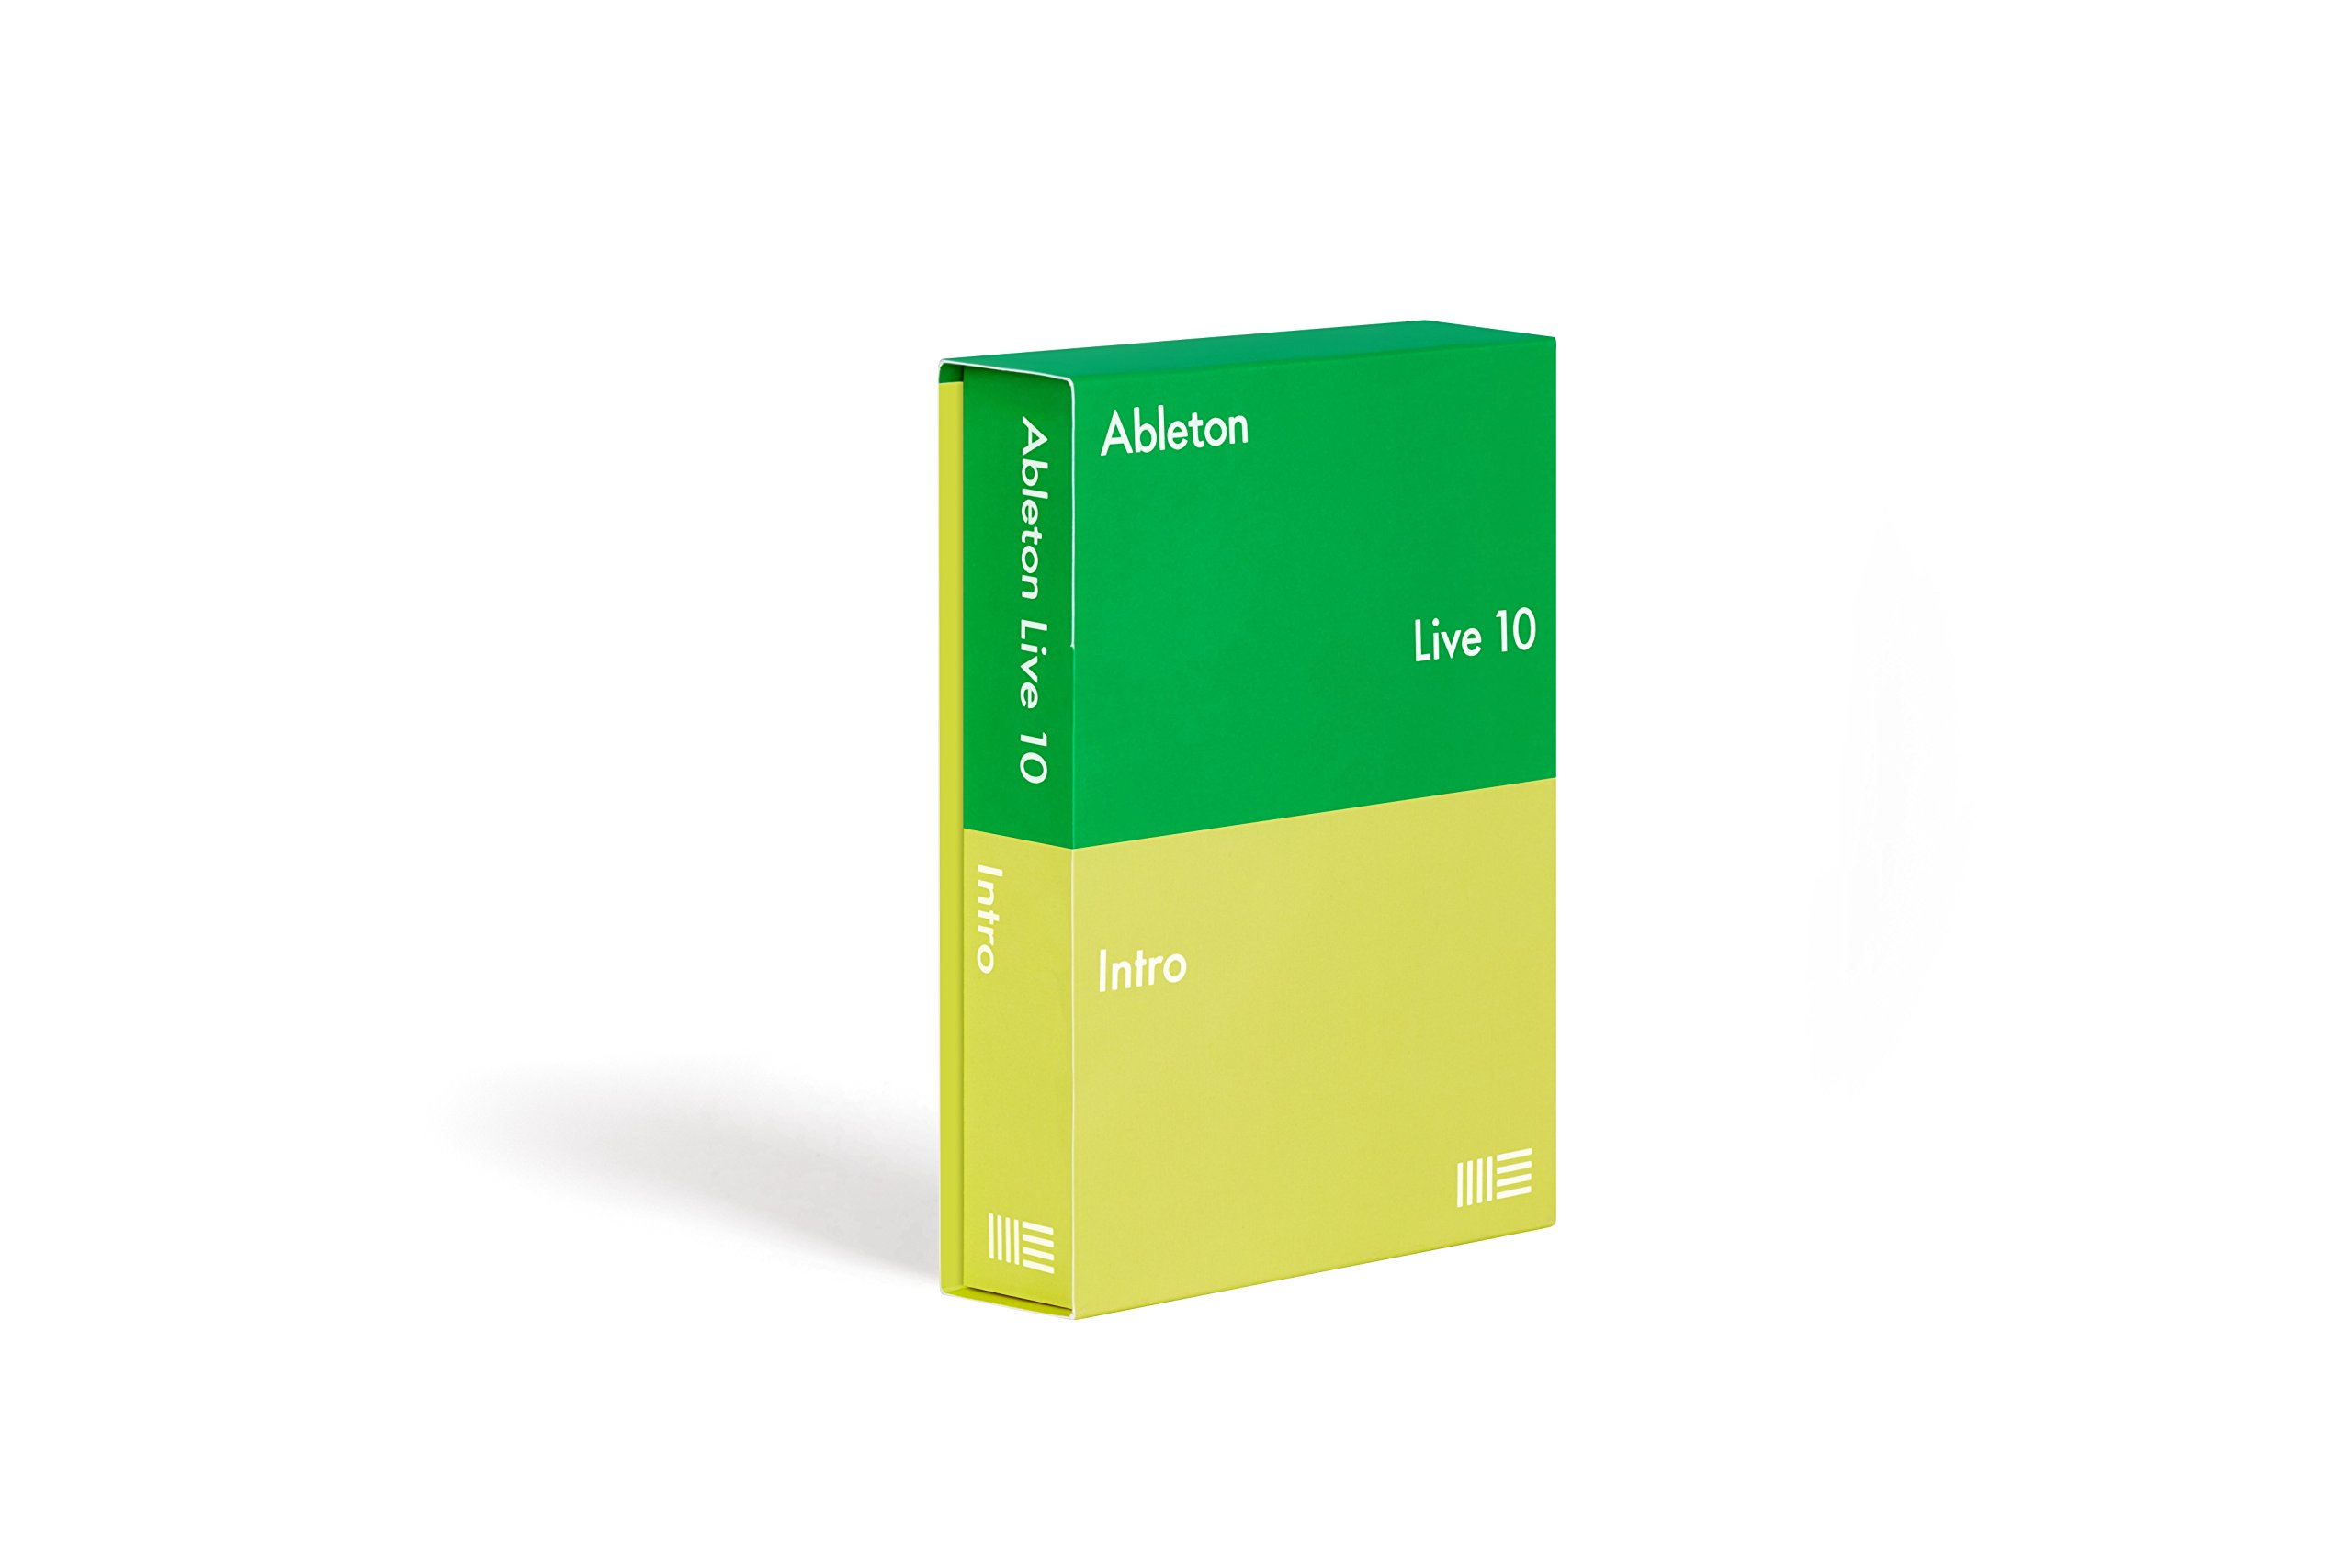 Ableton Multitrack Recording Software (Live 10 Intro) by Ableton